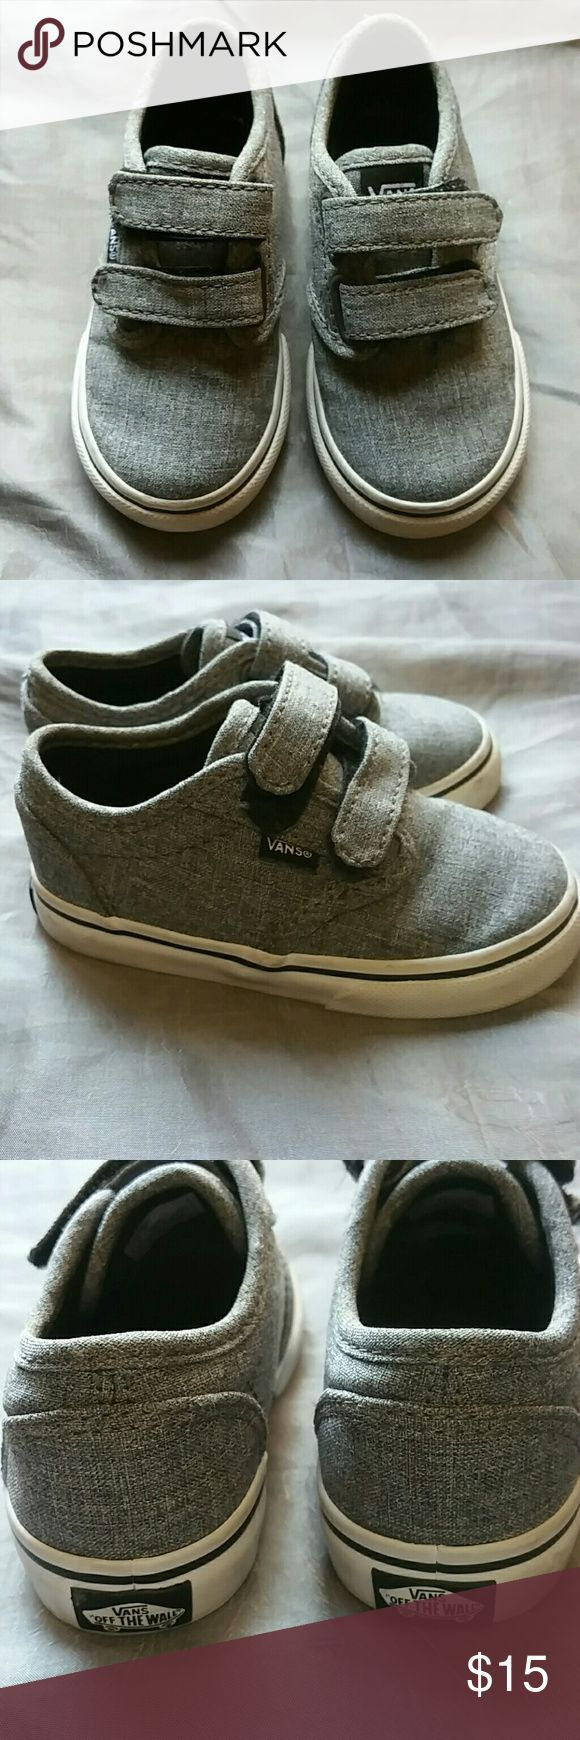 Grey vans size 6.5 with two velcro straps Grey vans size 6.5 with two velcro straps. Please see photos for more details and feel free to ask any questions that you may have Vans Shoes Sneakers